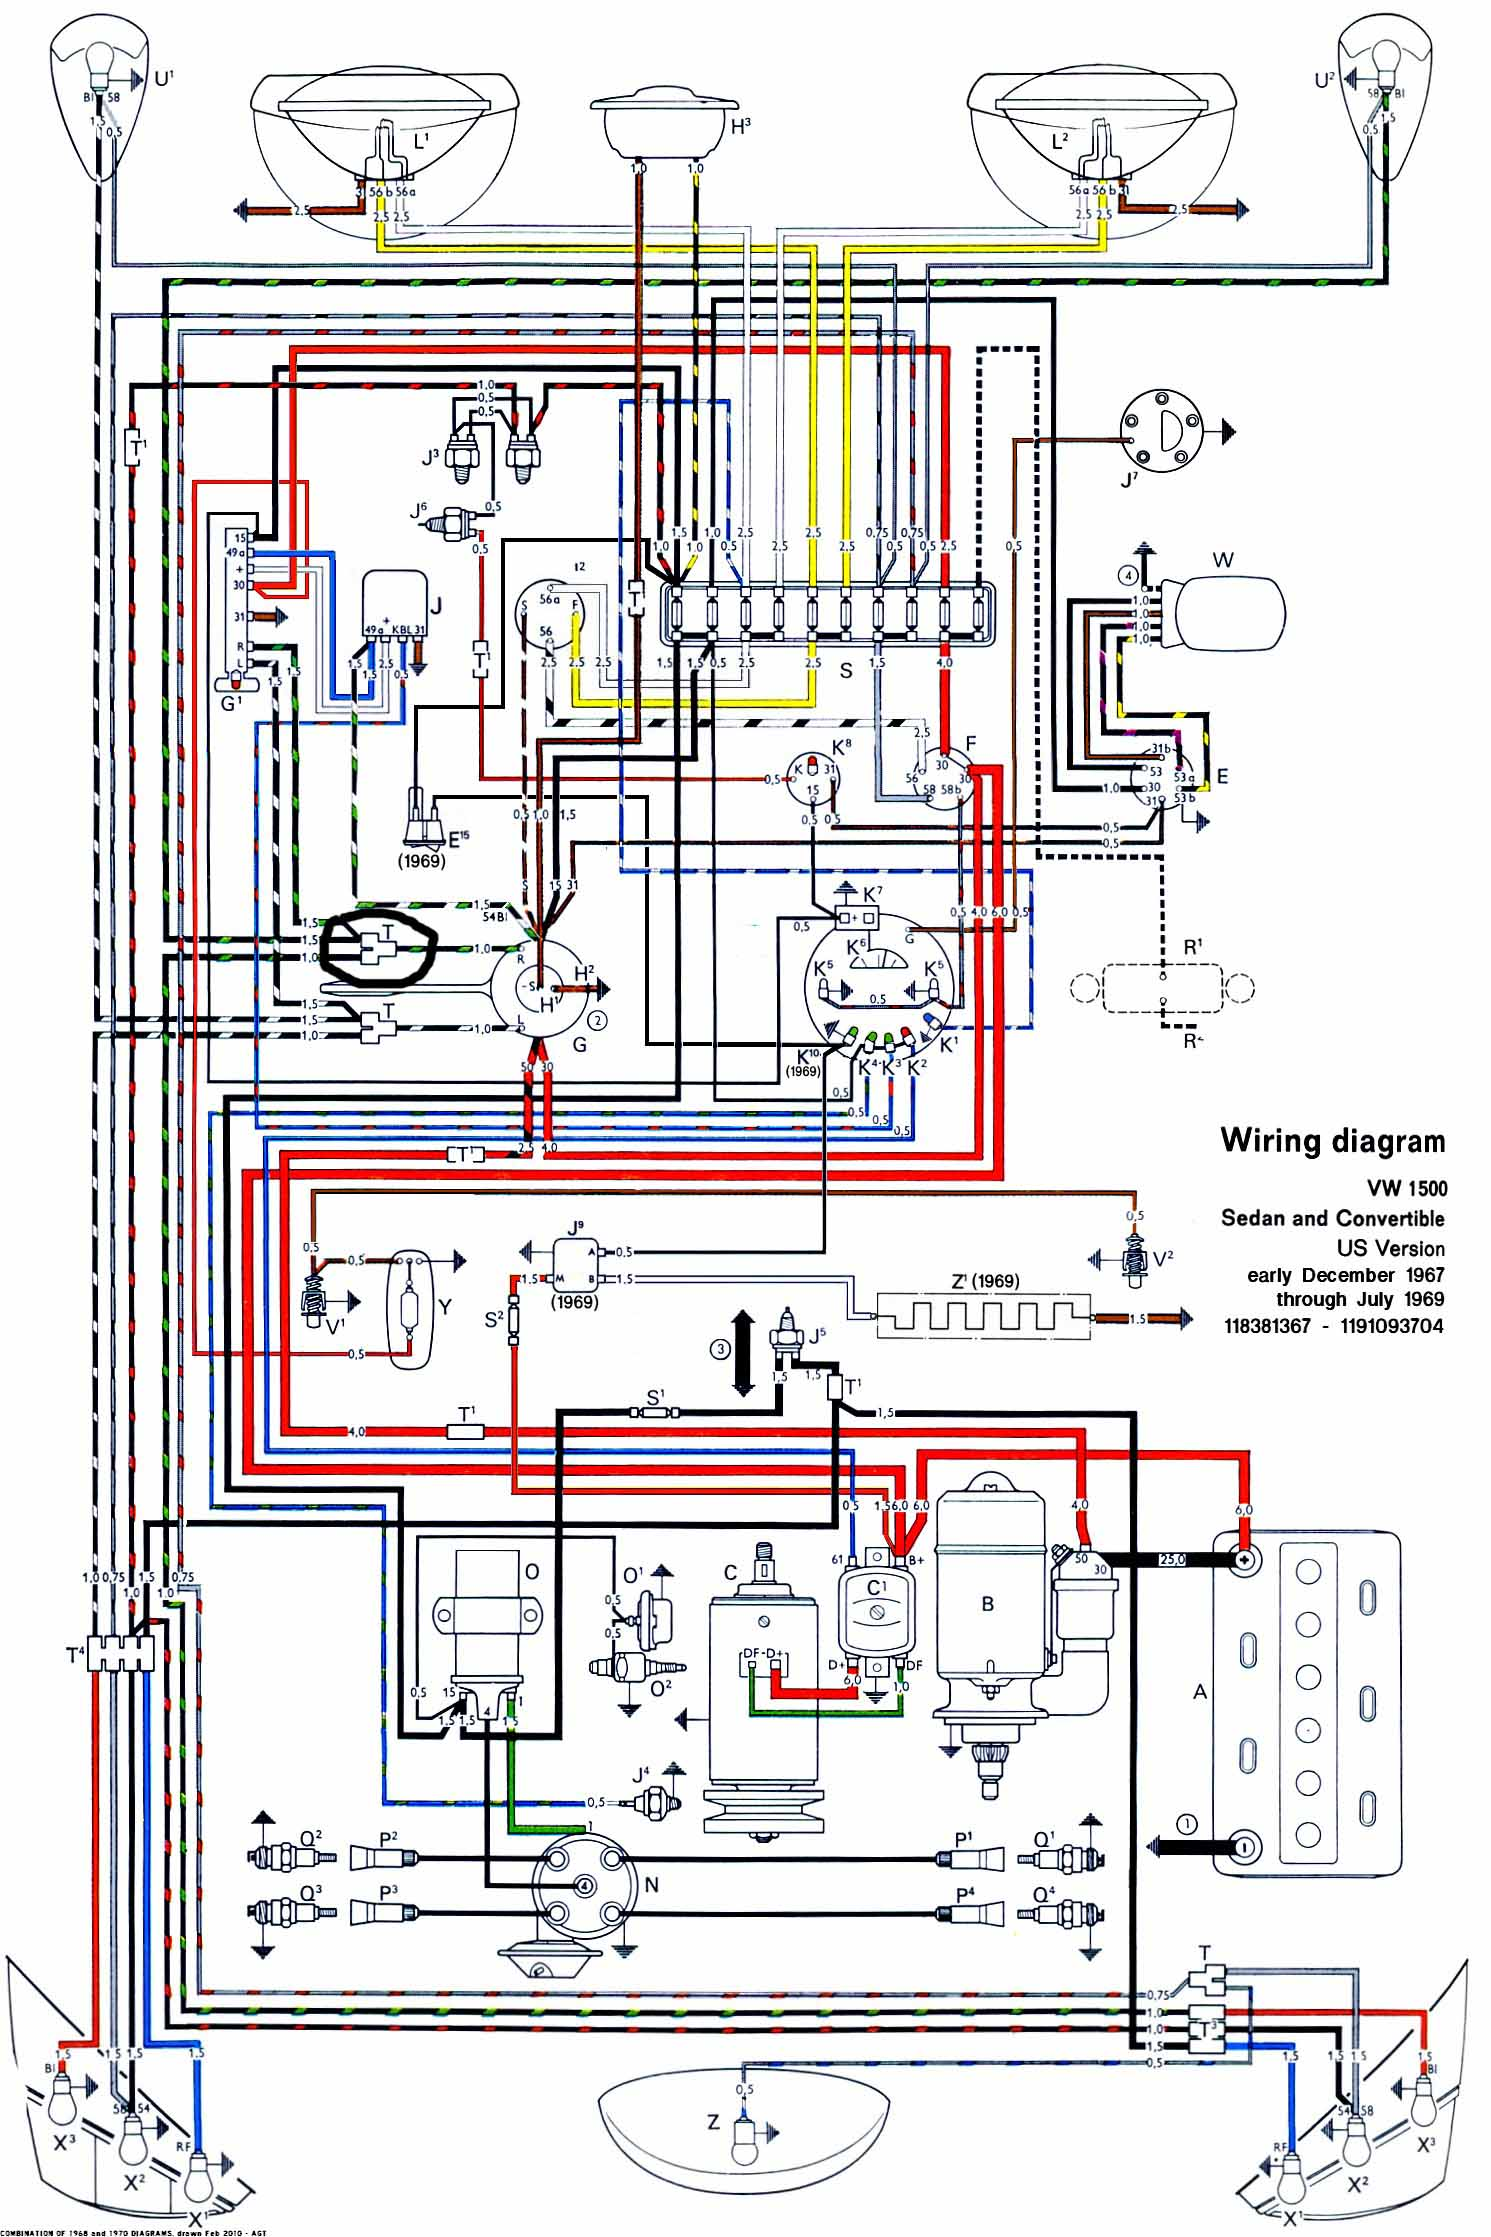 va_9512] karmann ghia wiring diagram together with 1973 vw karmann ...  ilari rine erek itive otaxy wigeg mohammedshrine librar wiring 101